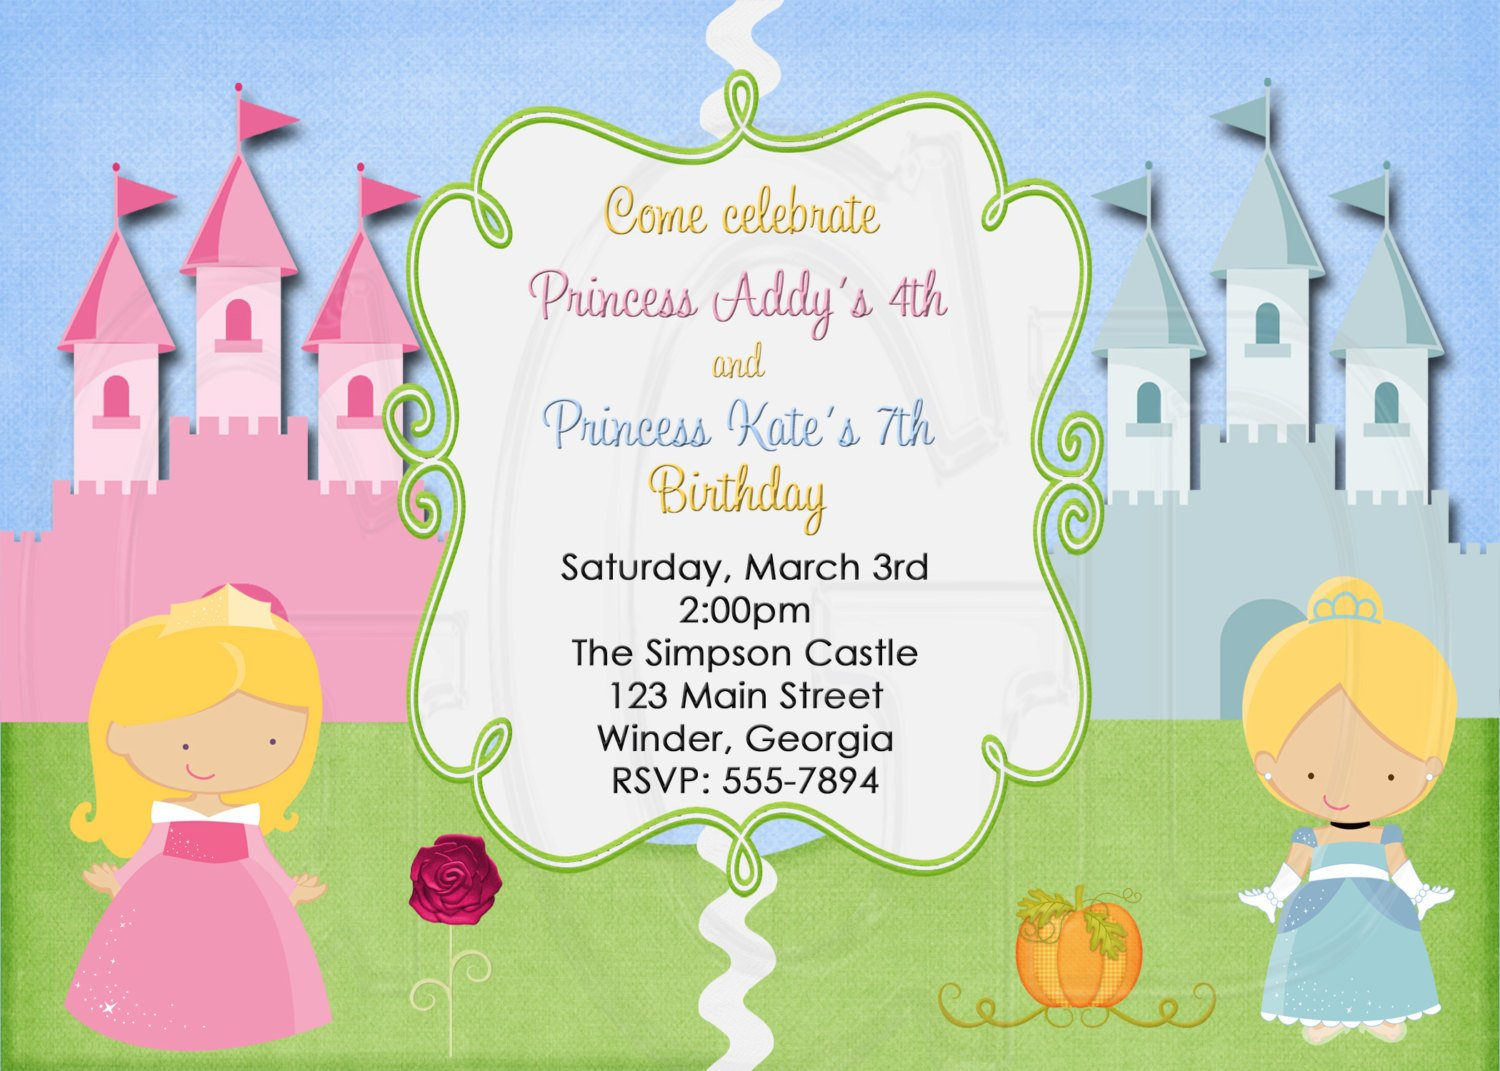 Printable Joint Birthday Party Invitations ~ Joint birthday party invitations bagvania free printable invitation template